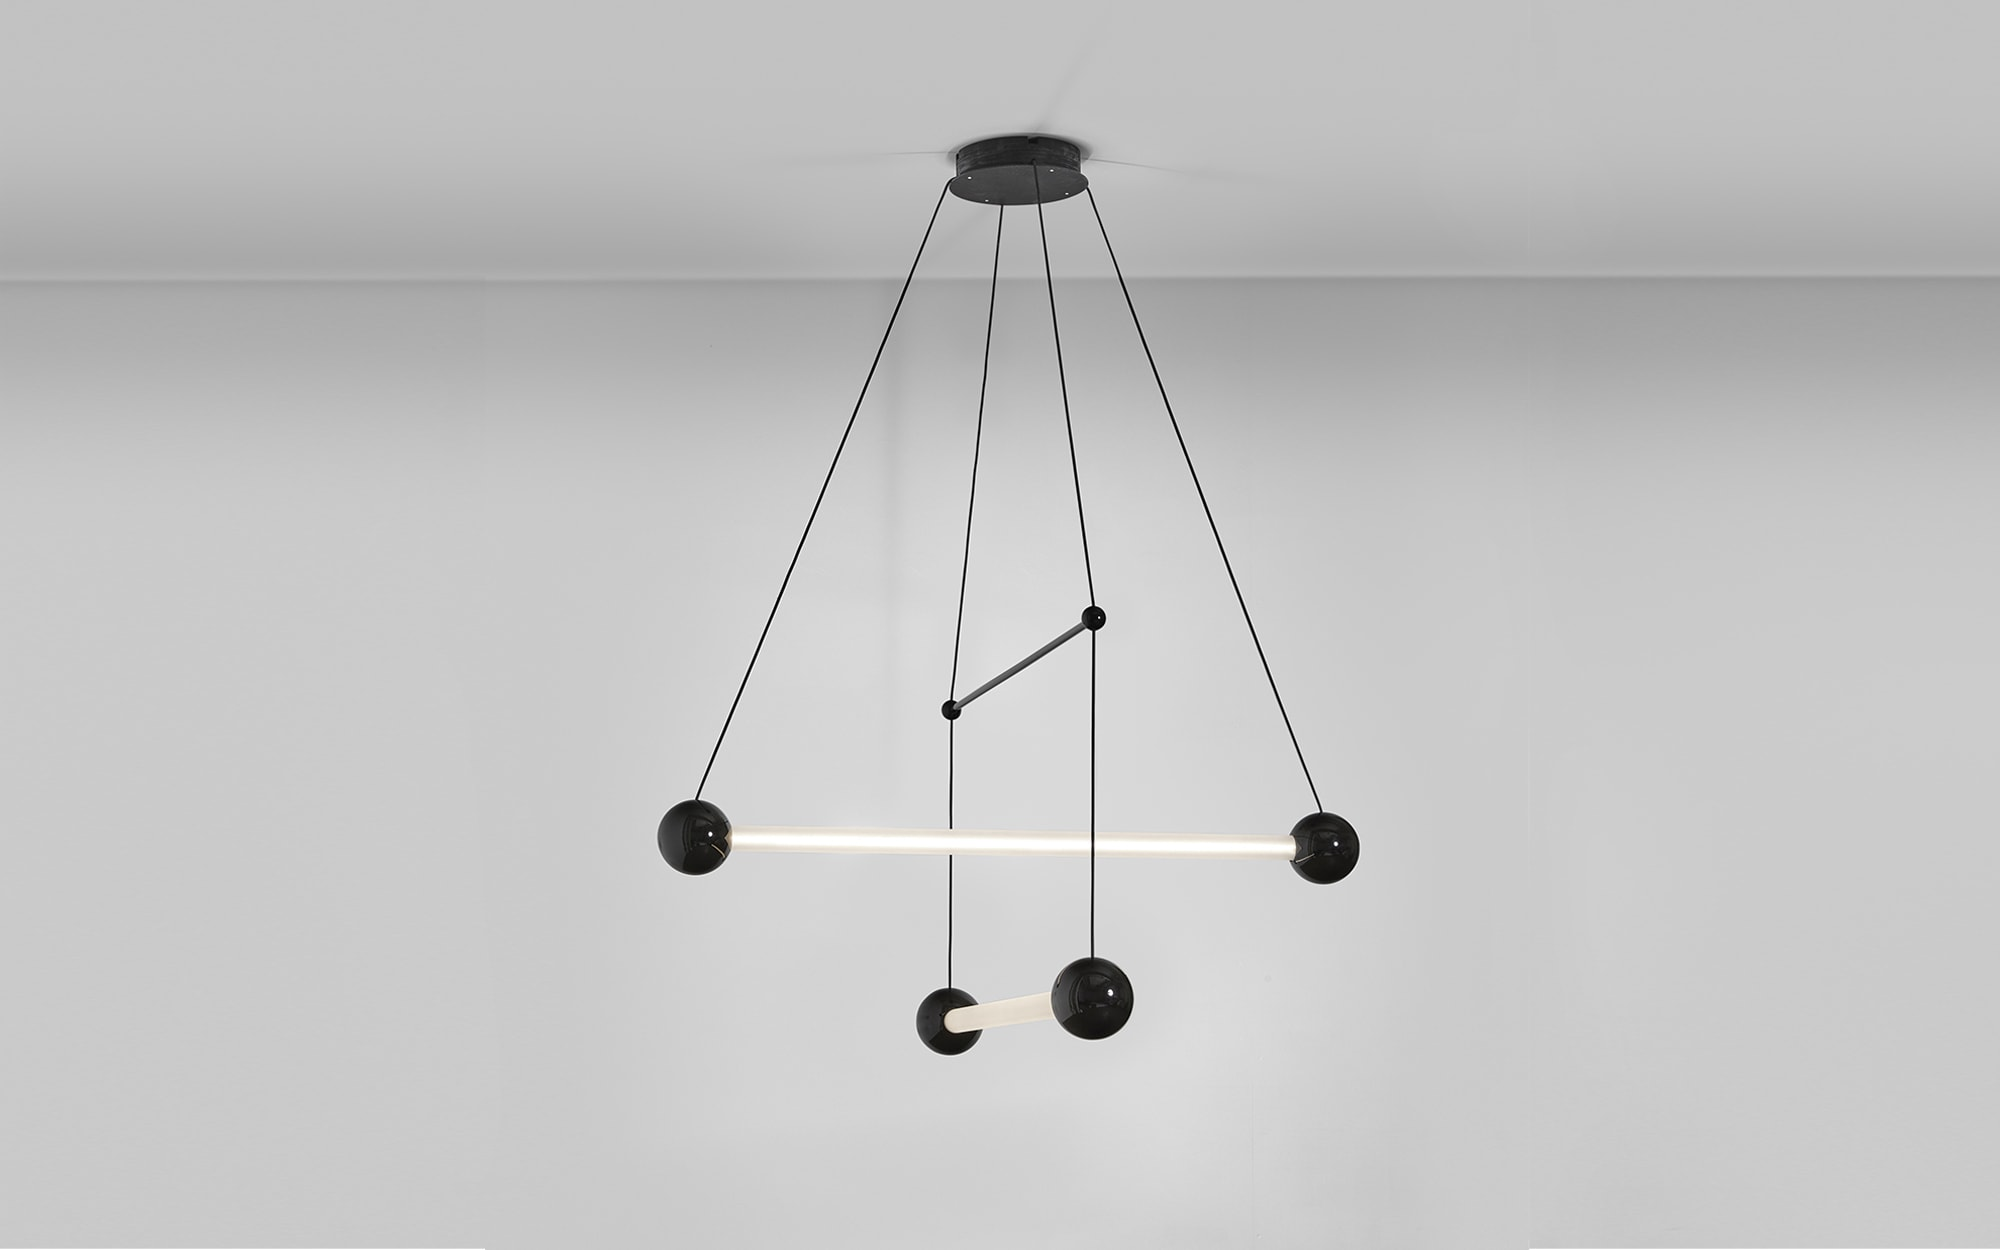 Pierre Charpin Trapeze 2 Ceiling light